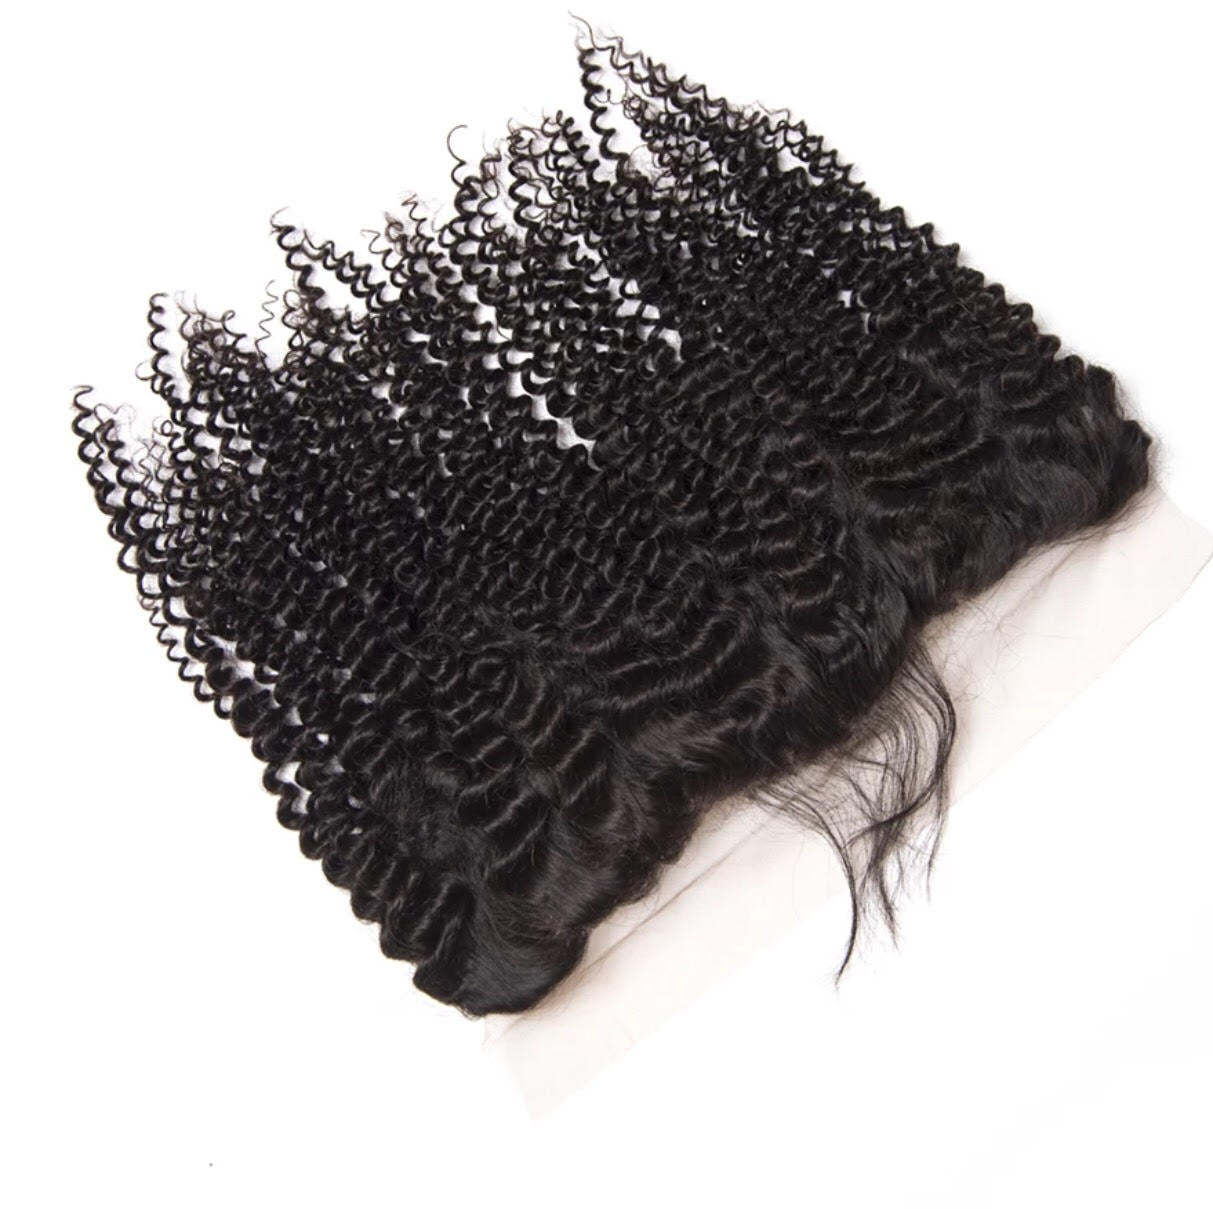 Frontals - Tropical, Kinky Curly and Kinky Straight